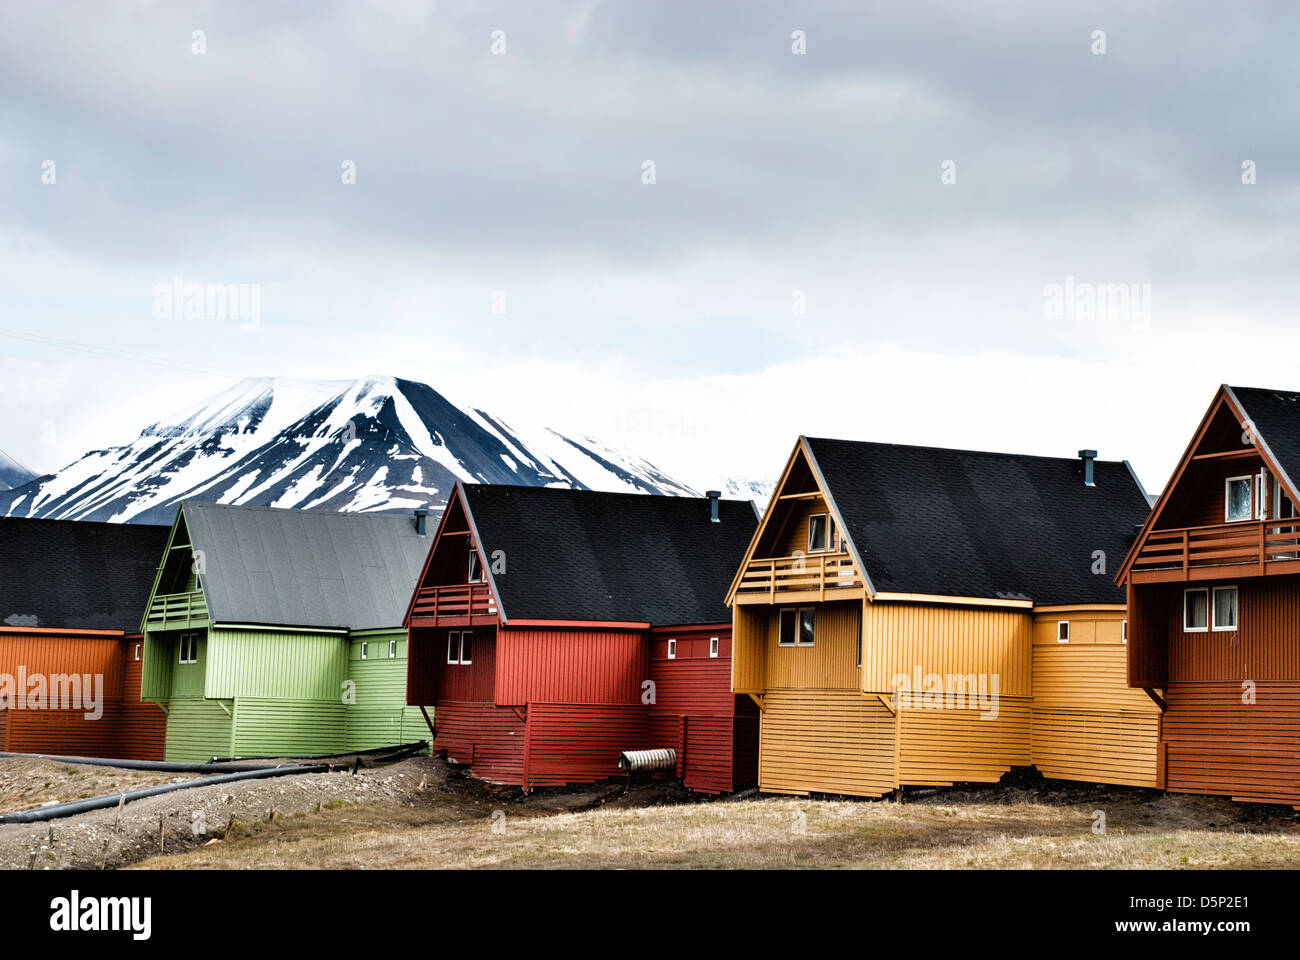 spitsbergen stockfotos spitsbergen bilder alamy. Black Bedroom Furniture Sets. Home Design Ideas